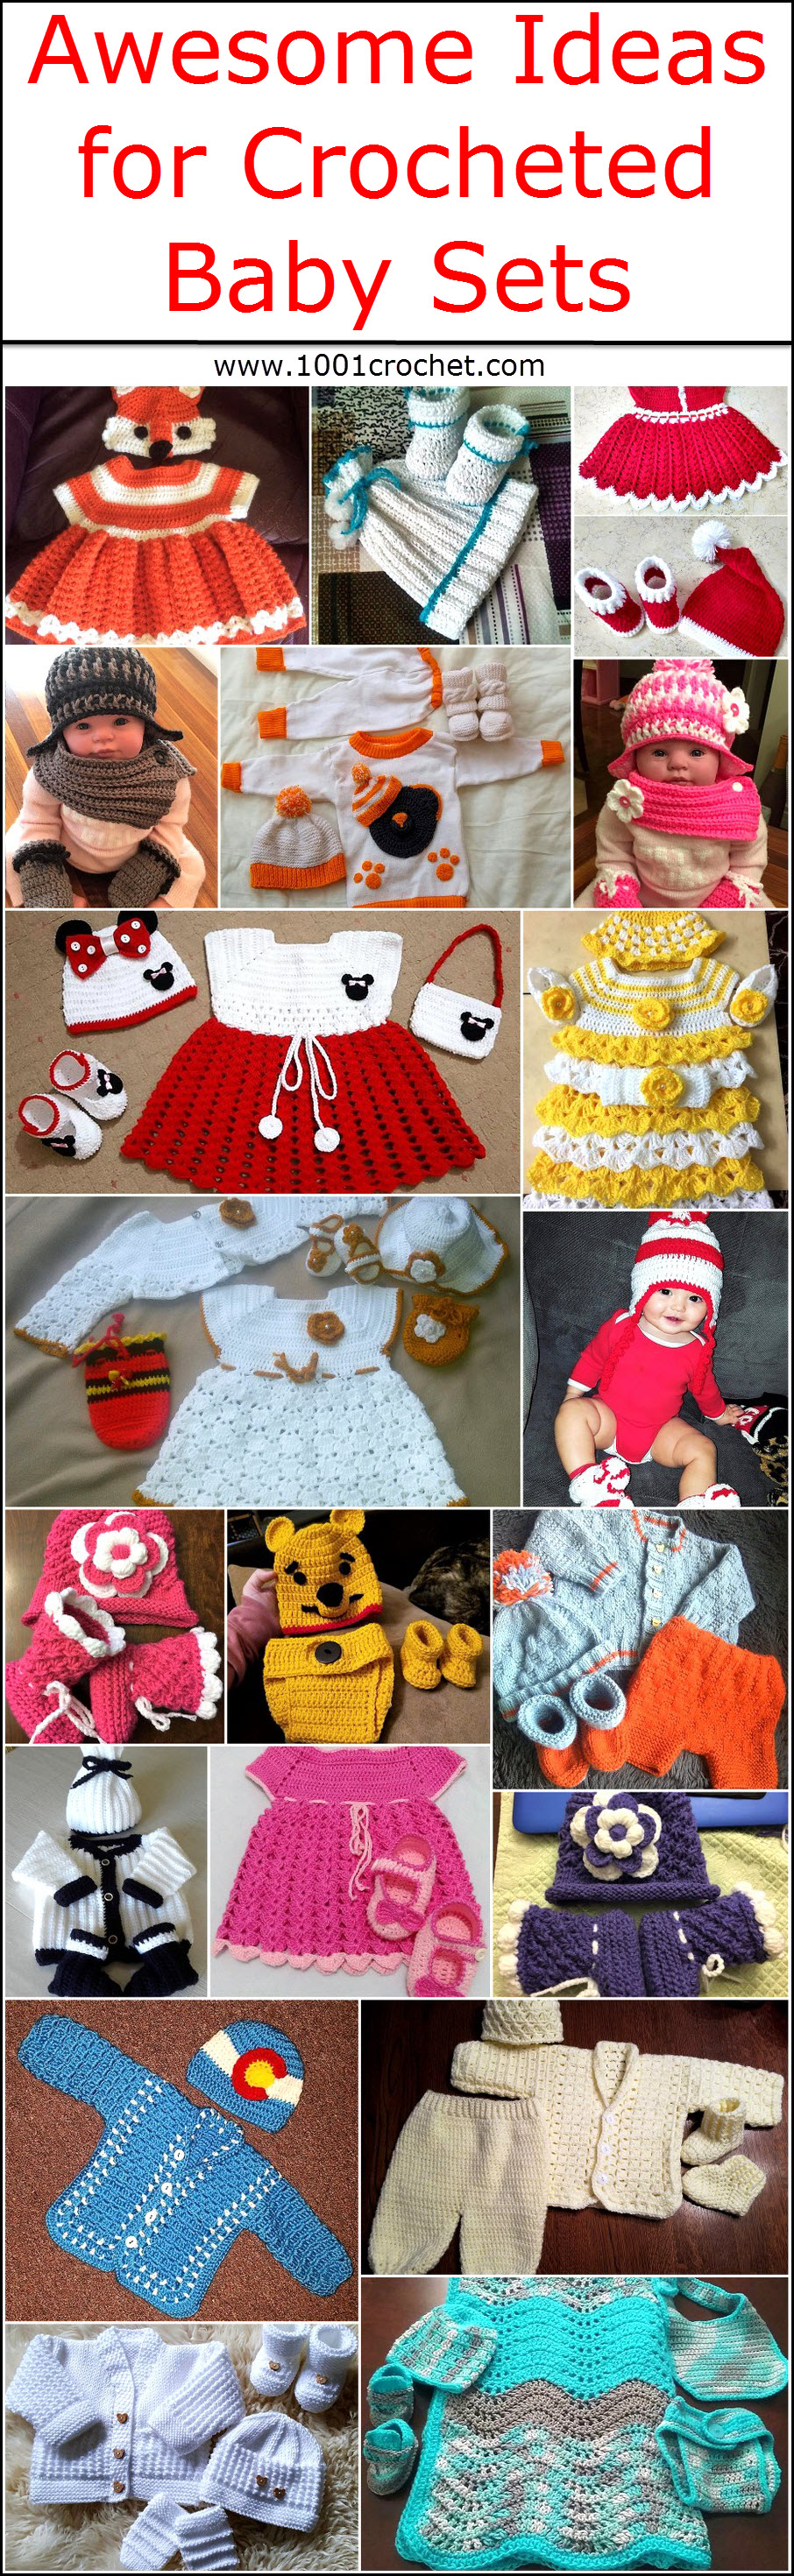 Awesome Ideas for Crocheted Baby Sets 1001 Crochet